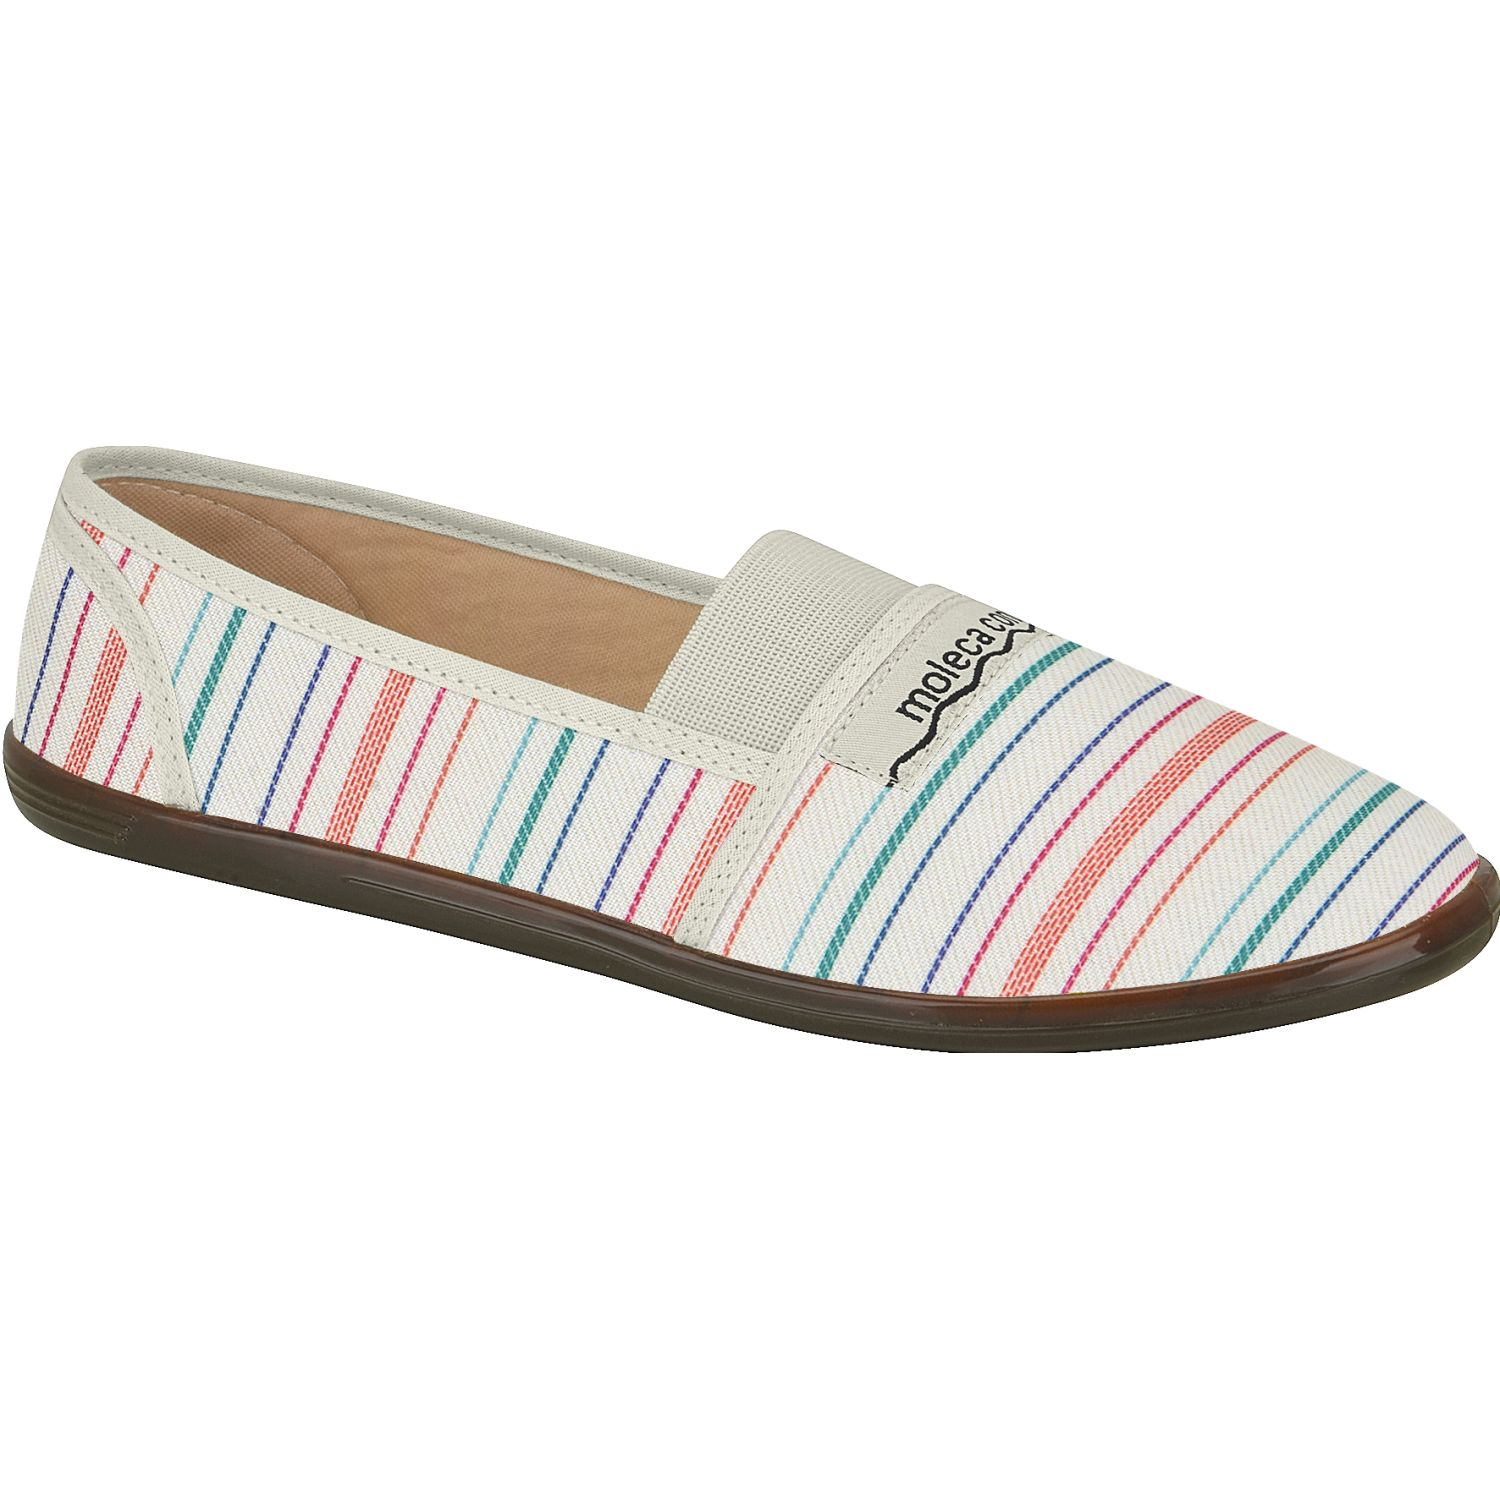 MOLECA 520.590.21444 MULTICOLOR Mocasines y slip-ons